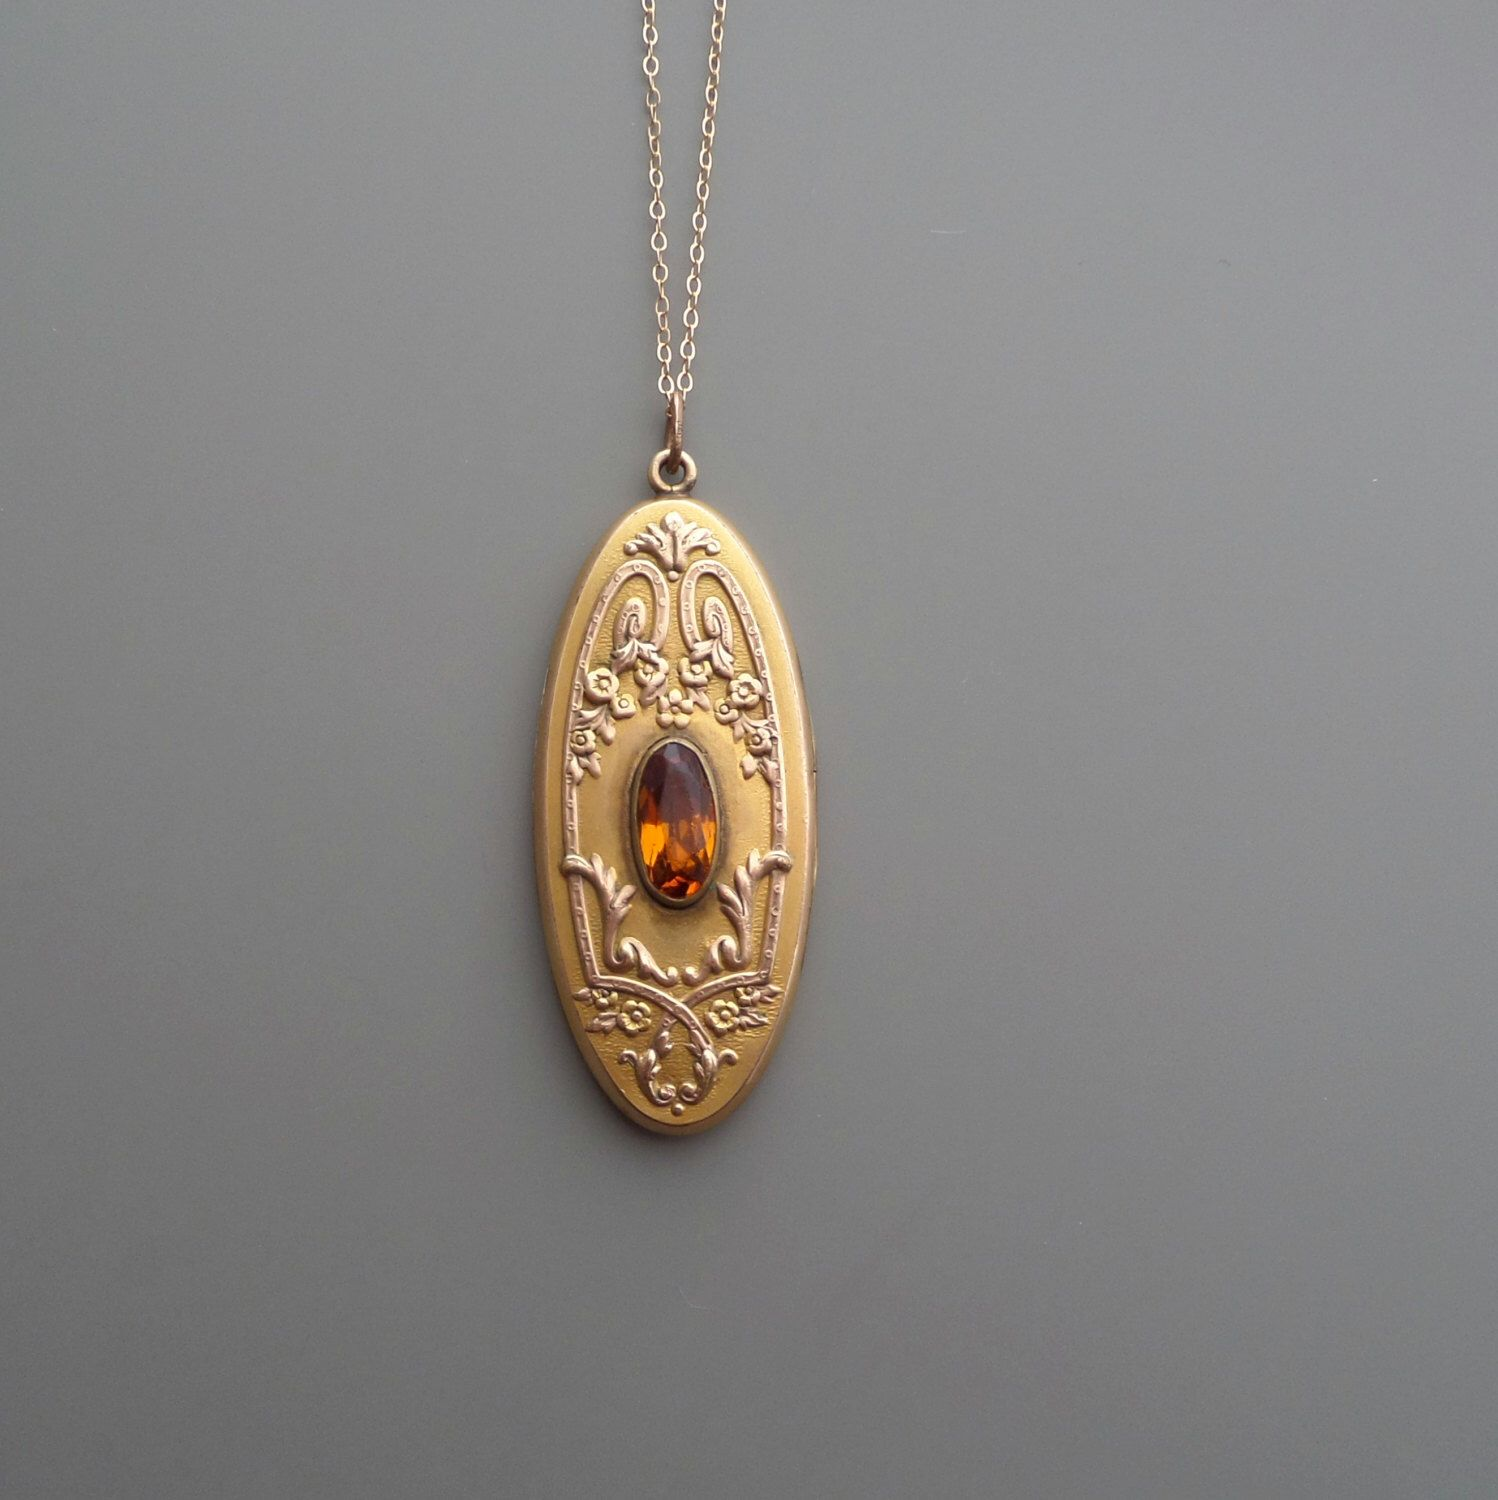 Antique Edwardian Locket. 1913. Amber Glass. Floral. by pinguim on Etsy https://www.etsy.com/listing/171443650/antique-edwardian-locket-1913-amber